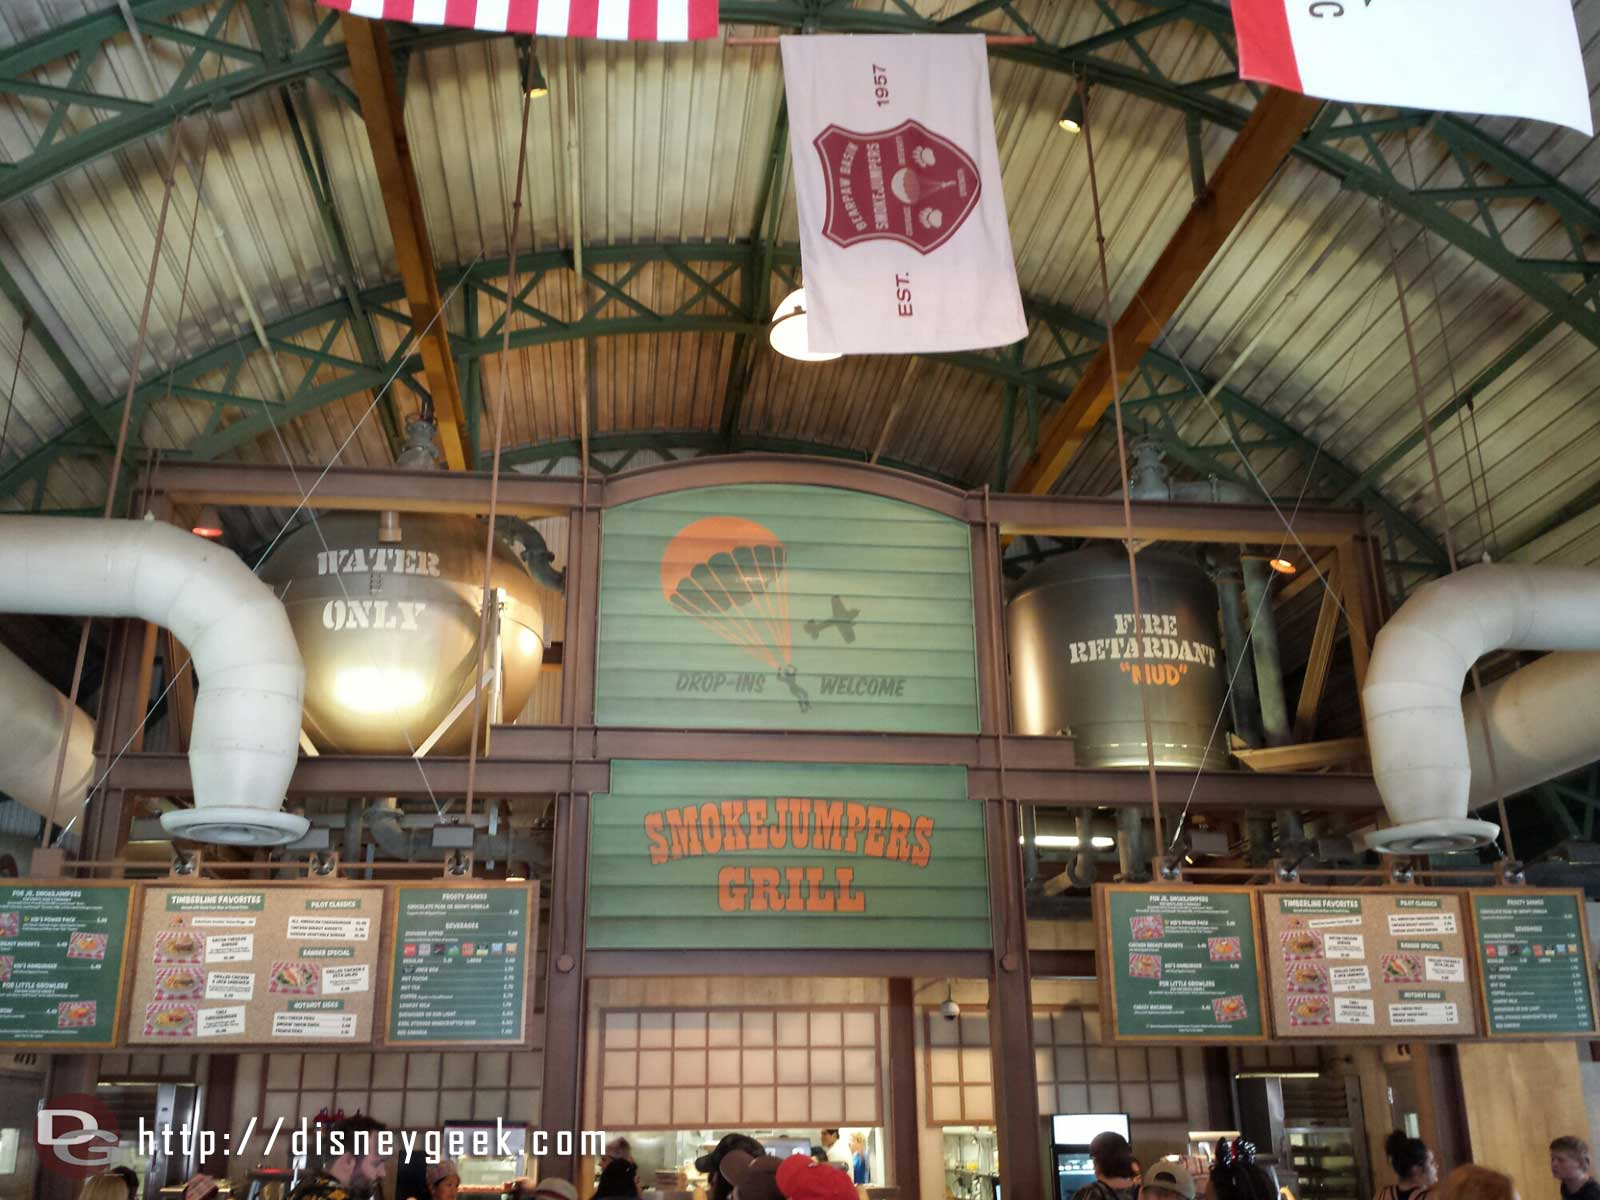 The inside of the Smokejumpers Grill at Disney California Adventure